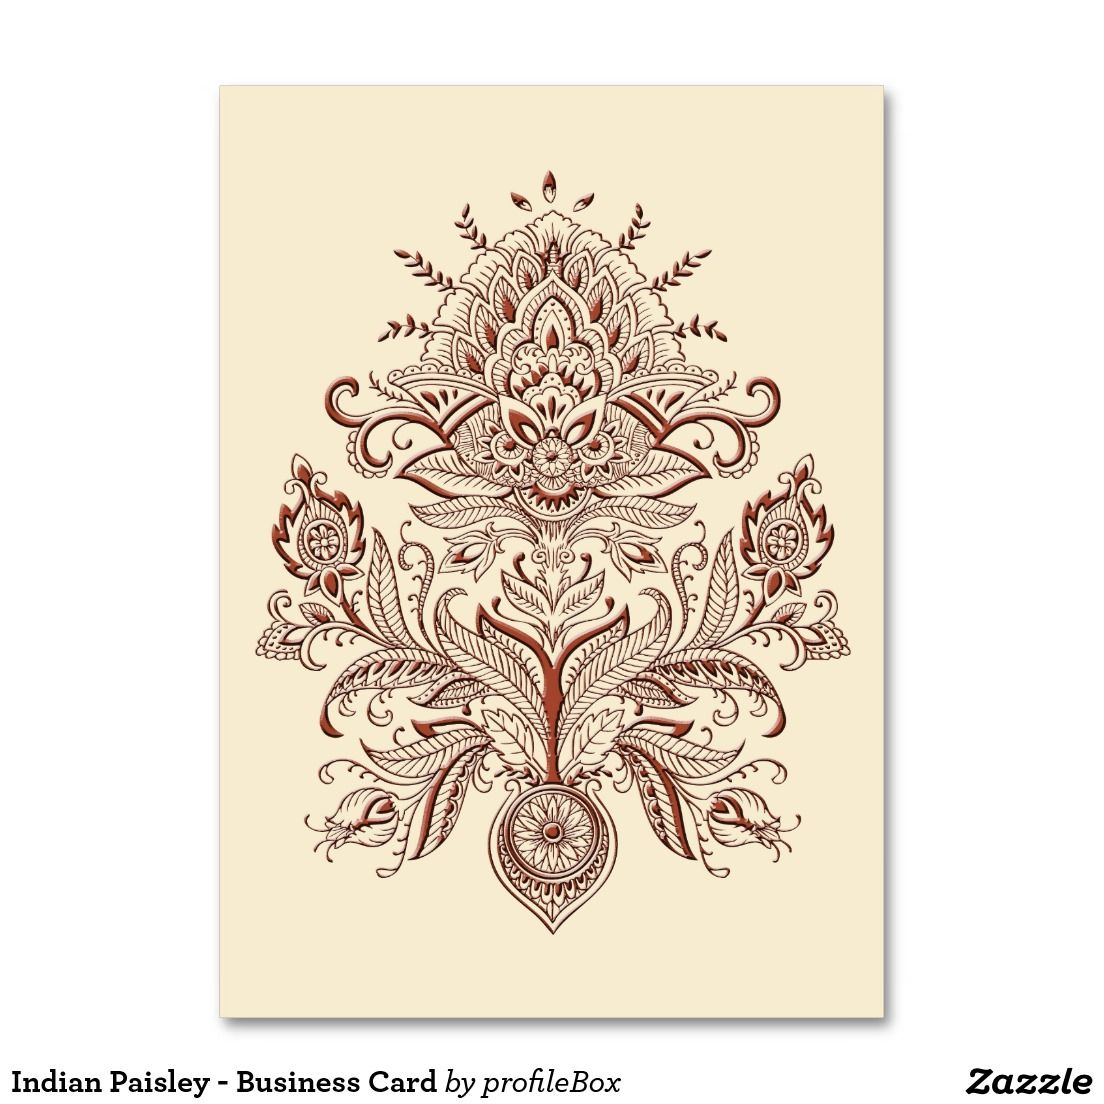 Indian Paisley - Business Card | Business cards and Business